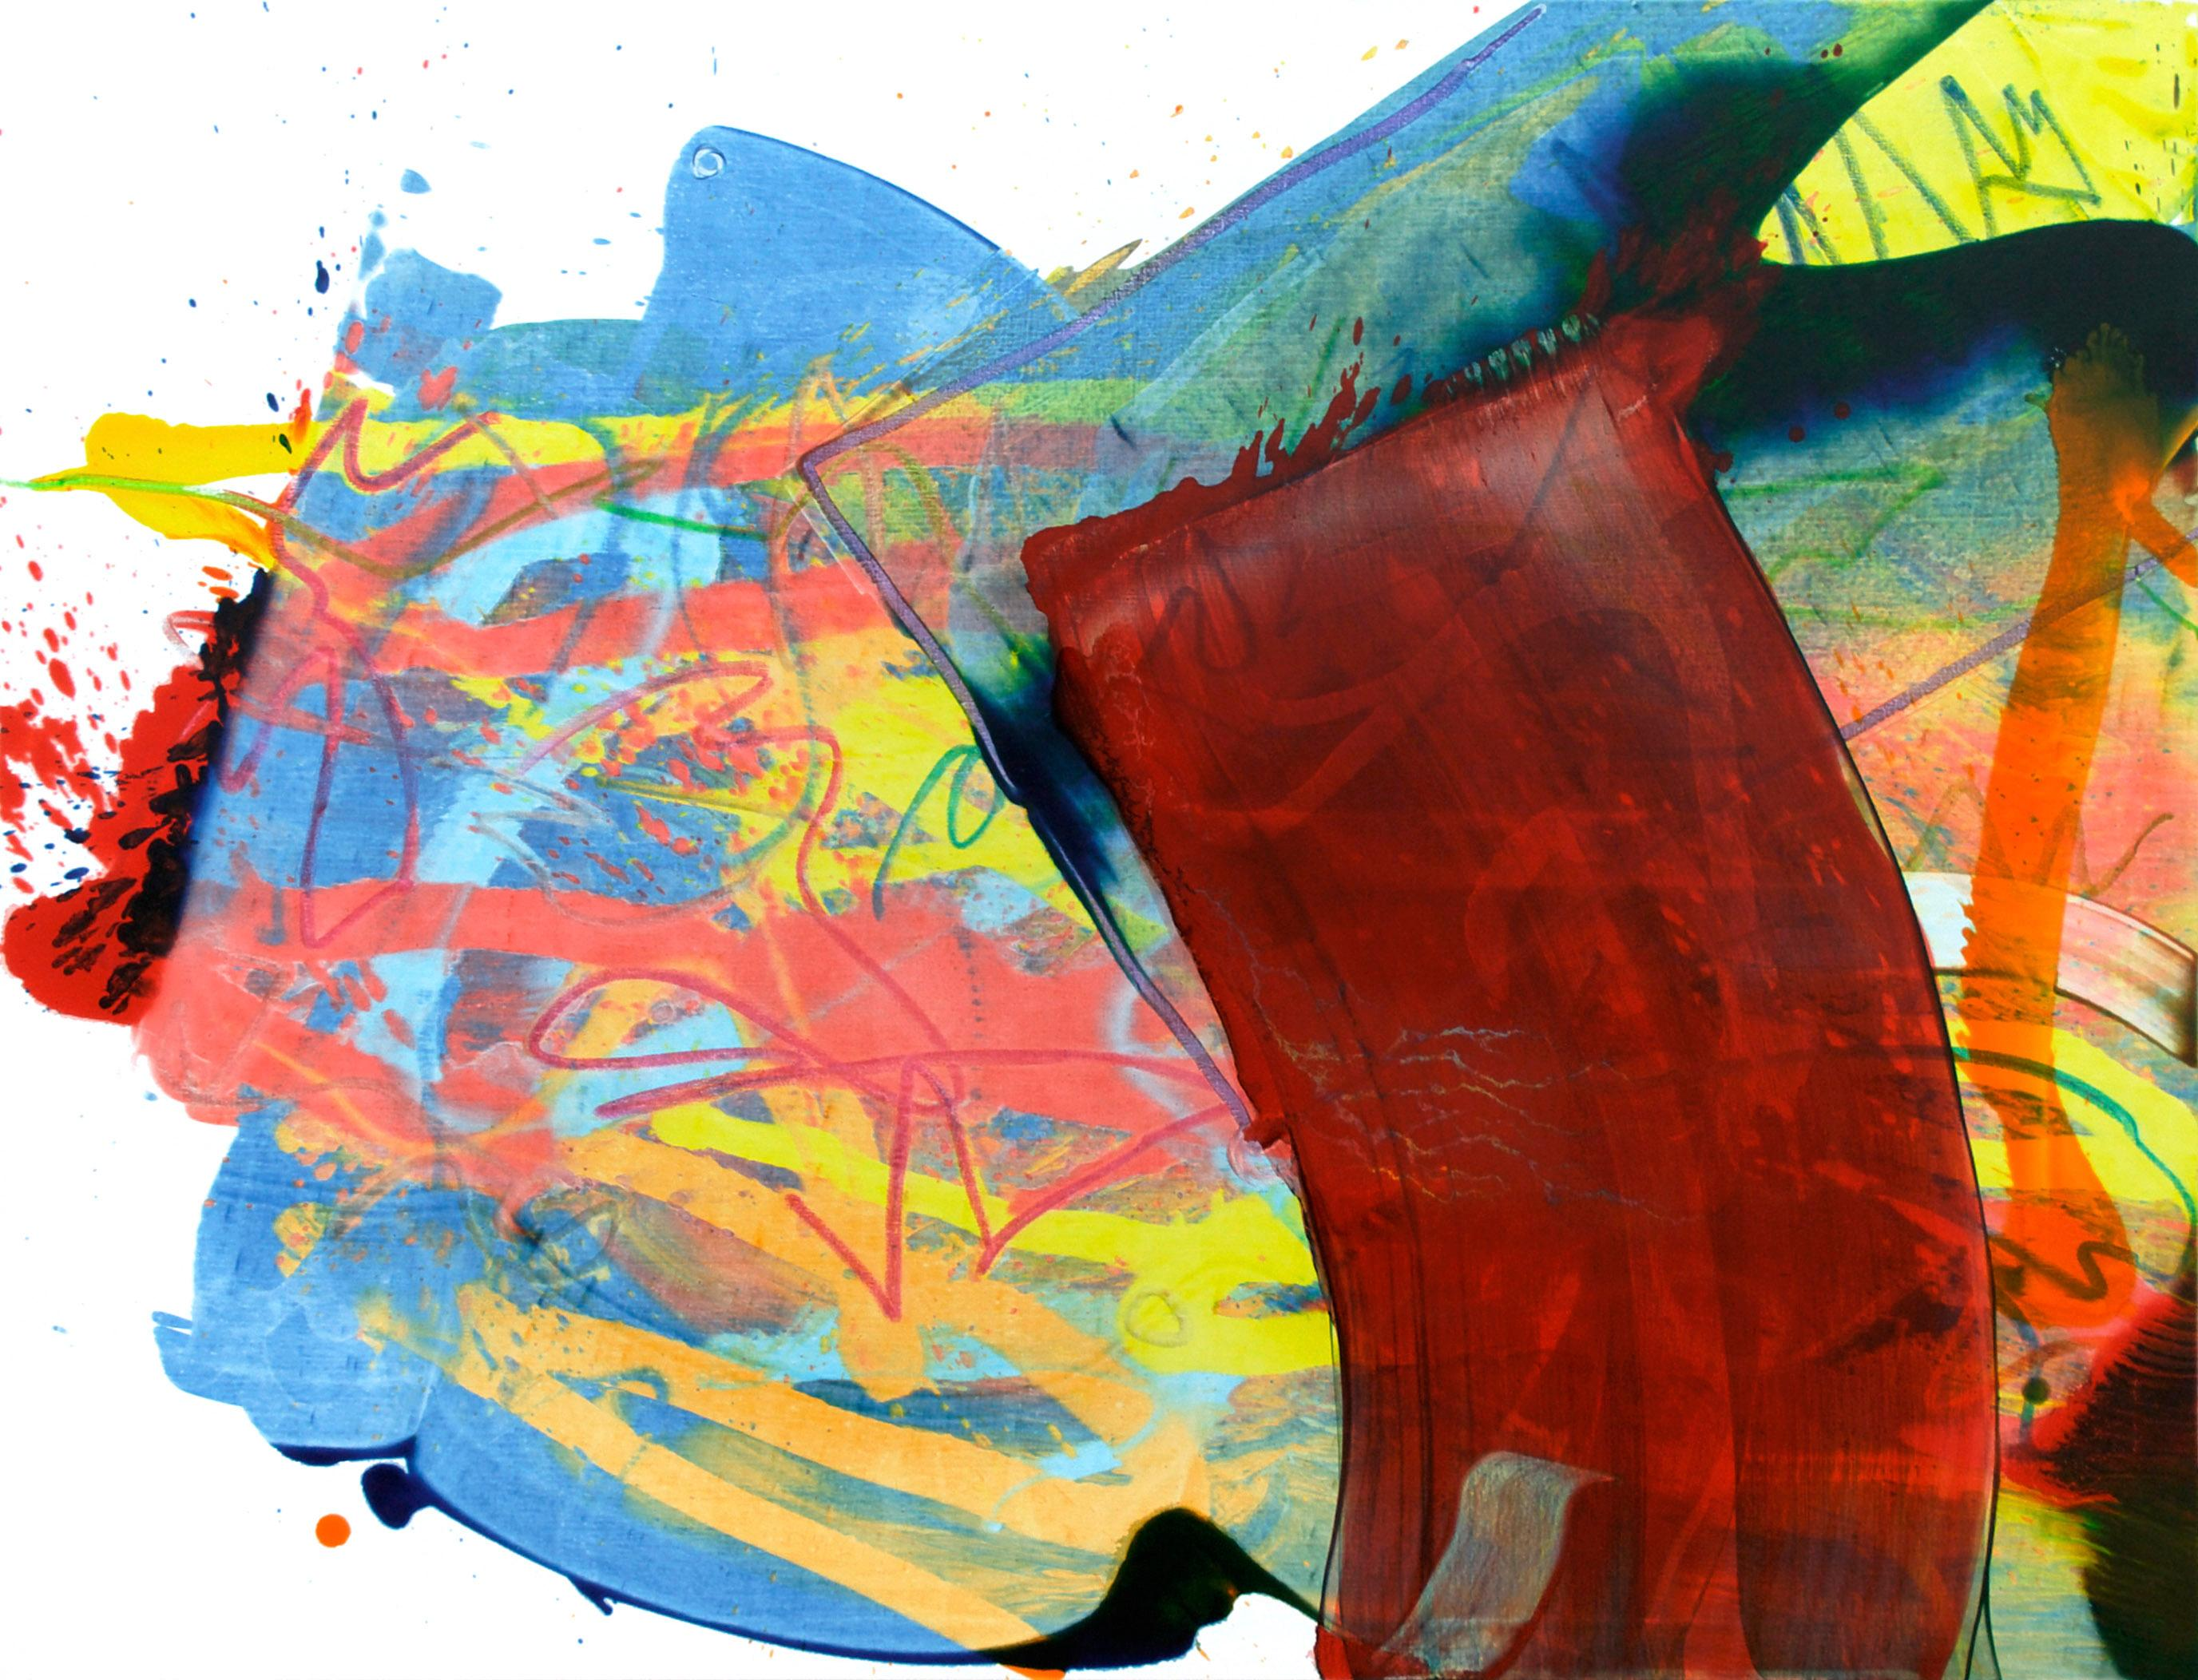 Cross-section of the moment 2, Red Abstract Expressionist Oil Painting Canvas